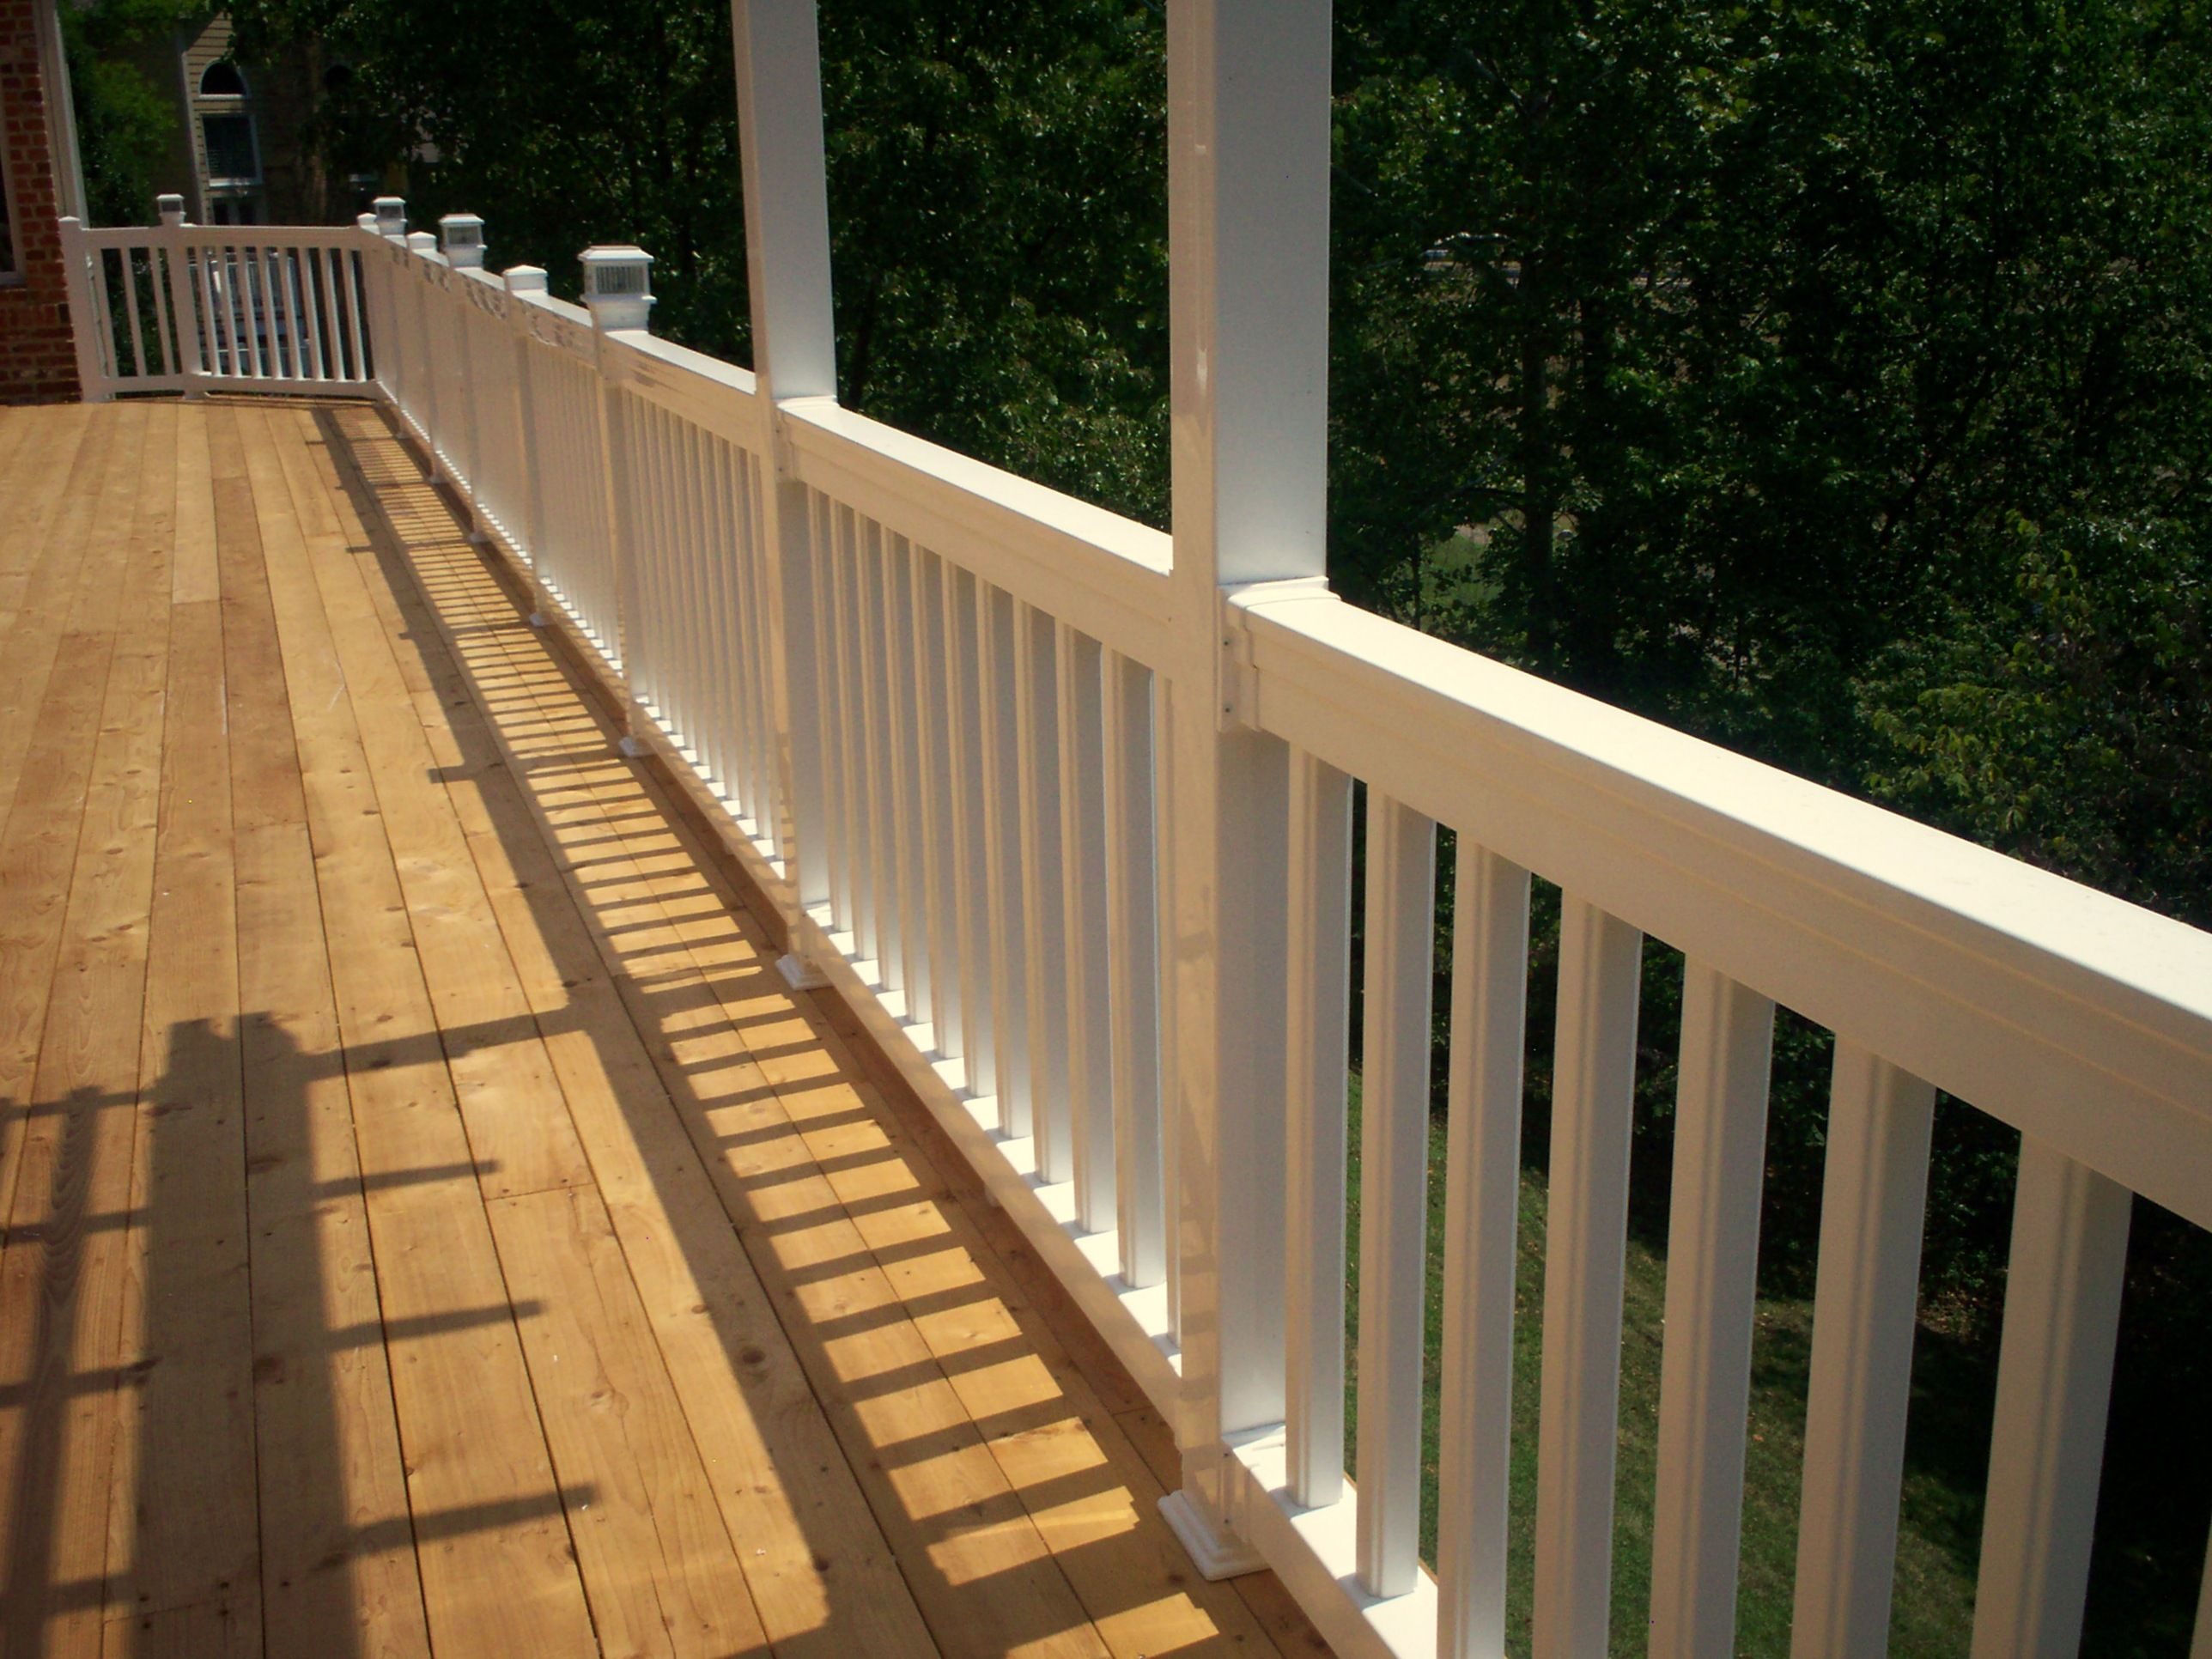 How to build custom deck railings decking deck railings and how to build custom deck railings baanklon Gallery